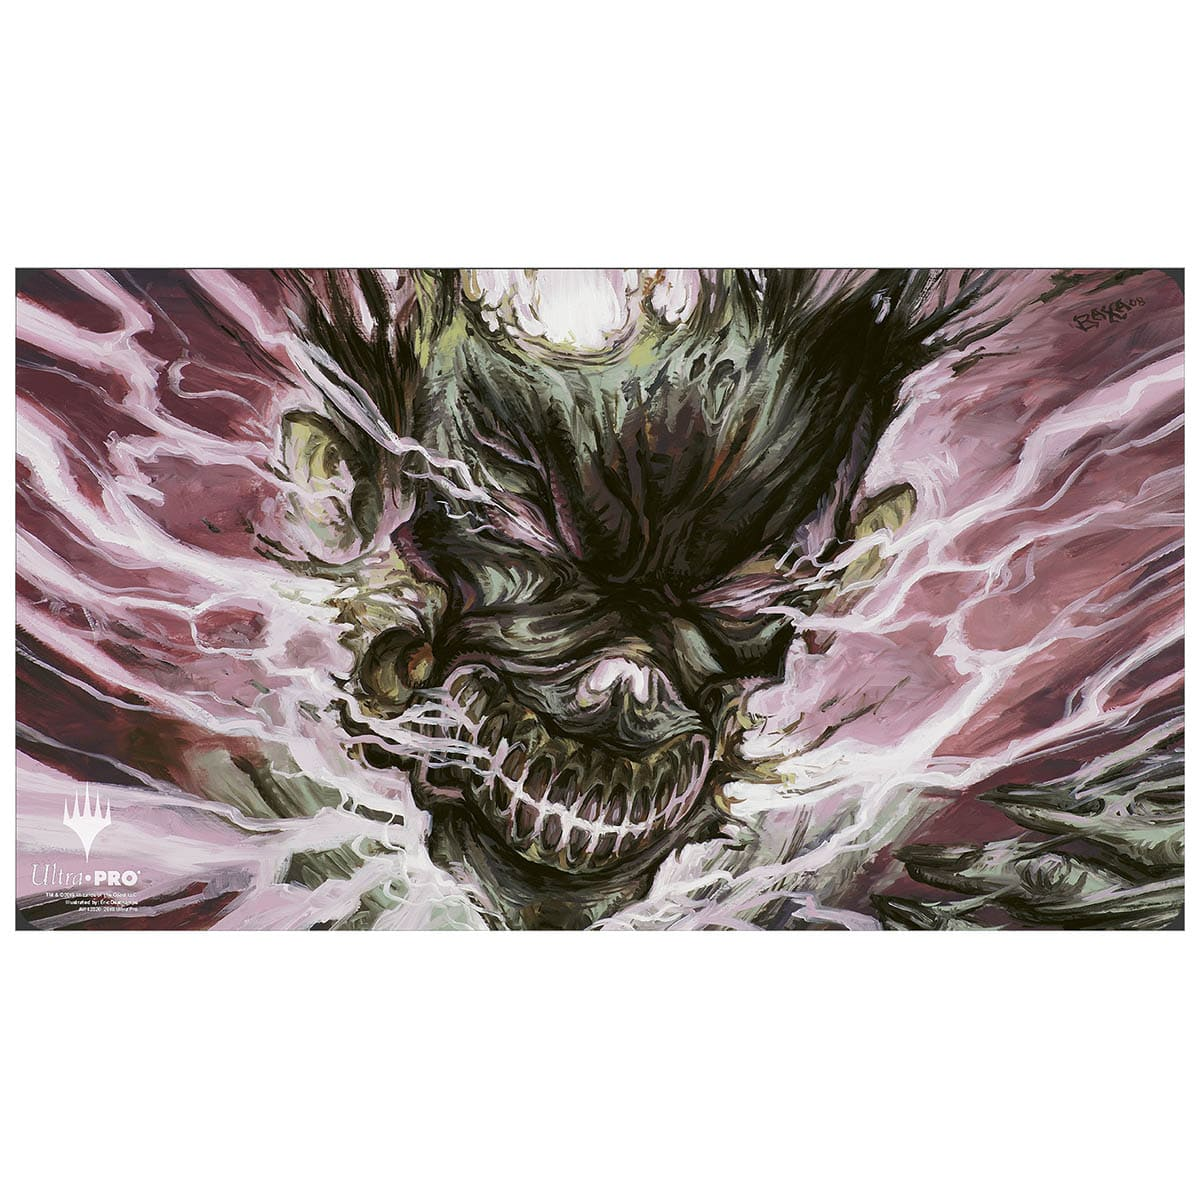 Blightning Playmat - Playmat - Original Magic Art - Accessories for Magic the Gathering and other card games